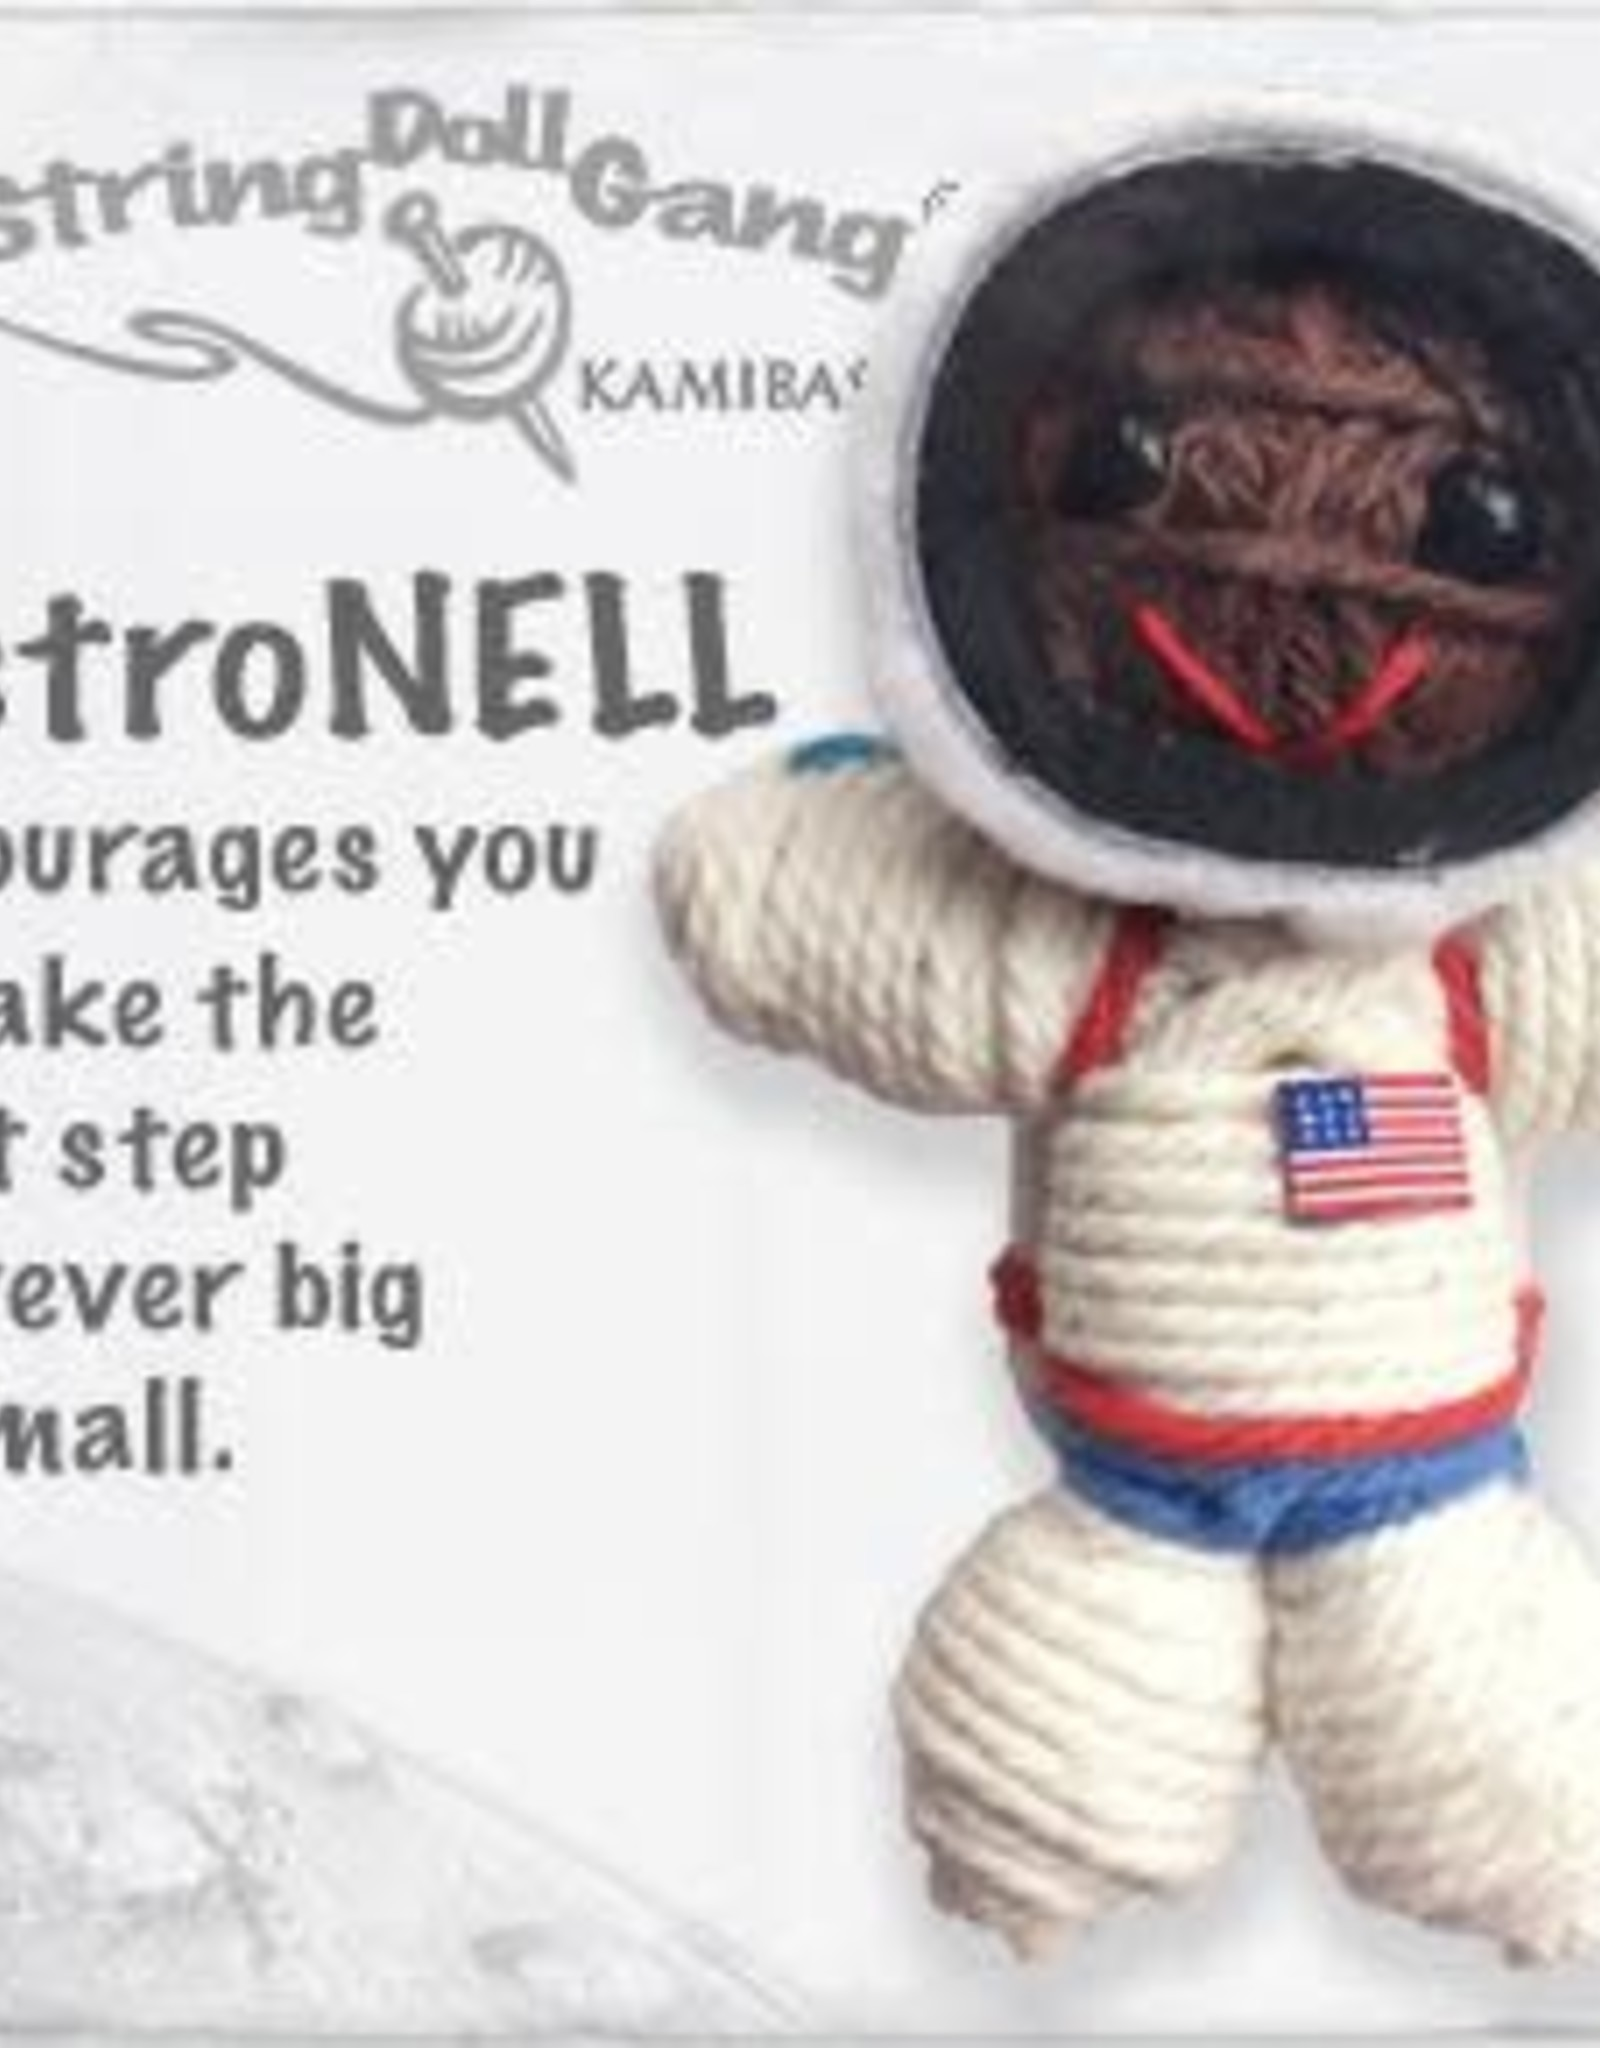 AstroNELL Brown